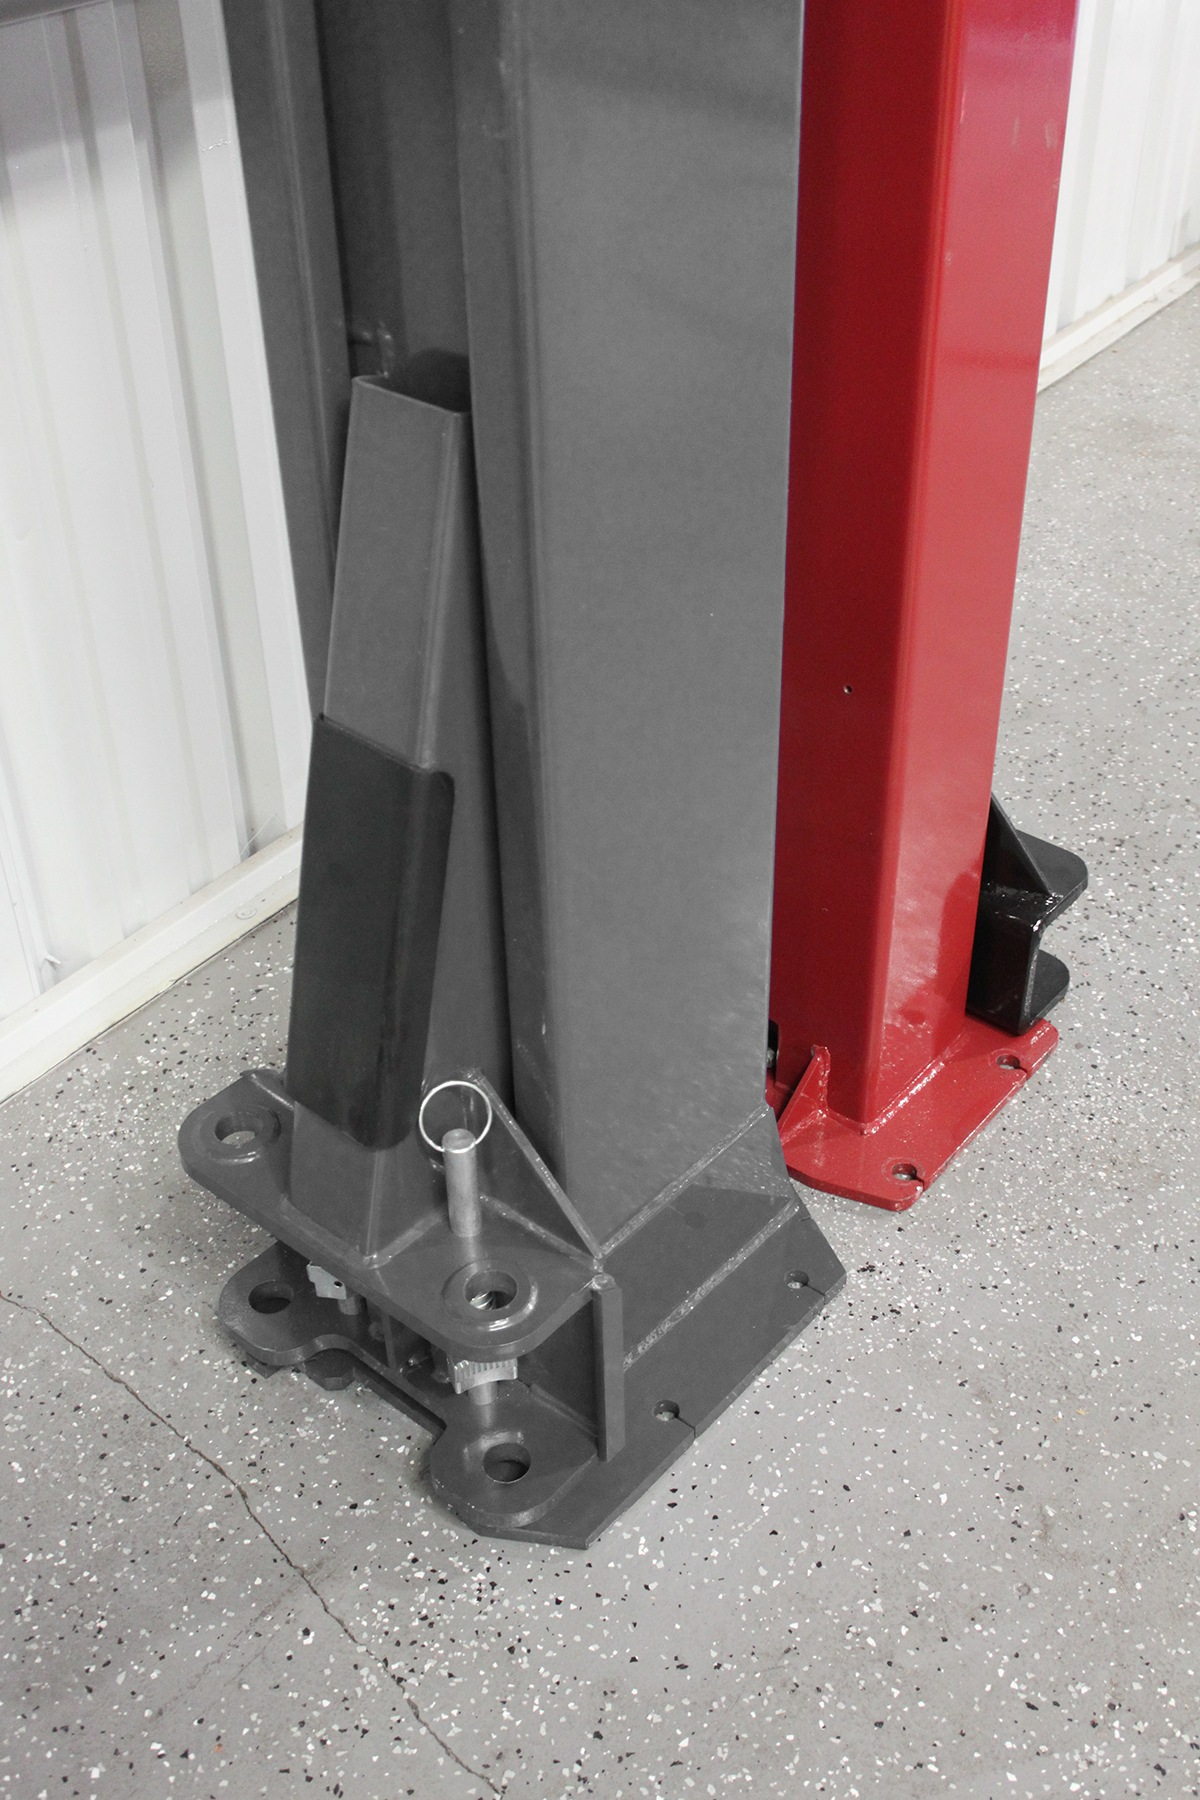 BendPak Two-Post lift and Challenger Two-Post lift Back-to-Back